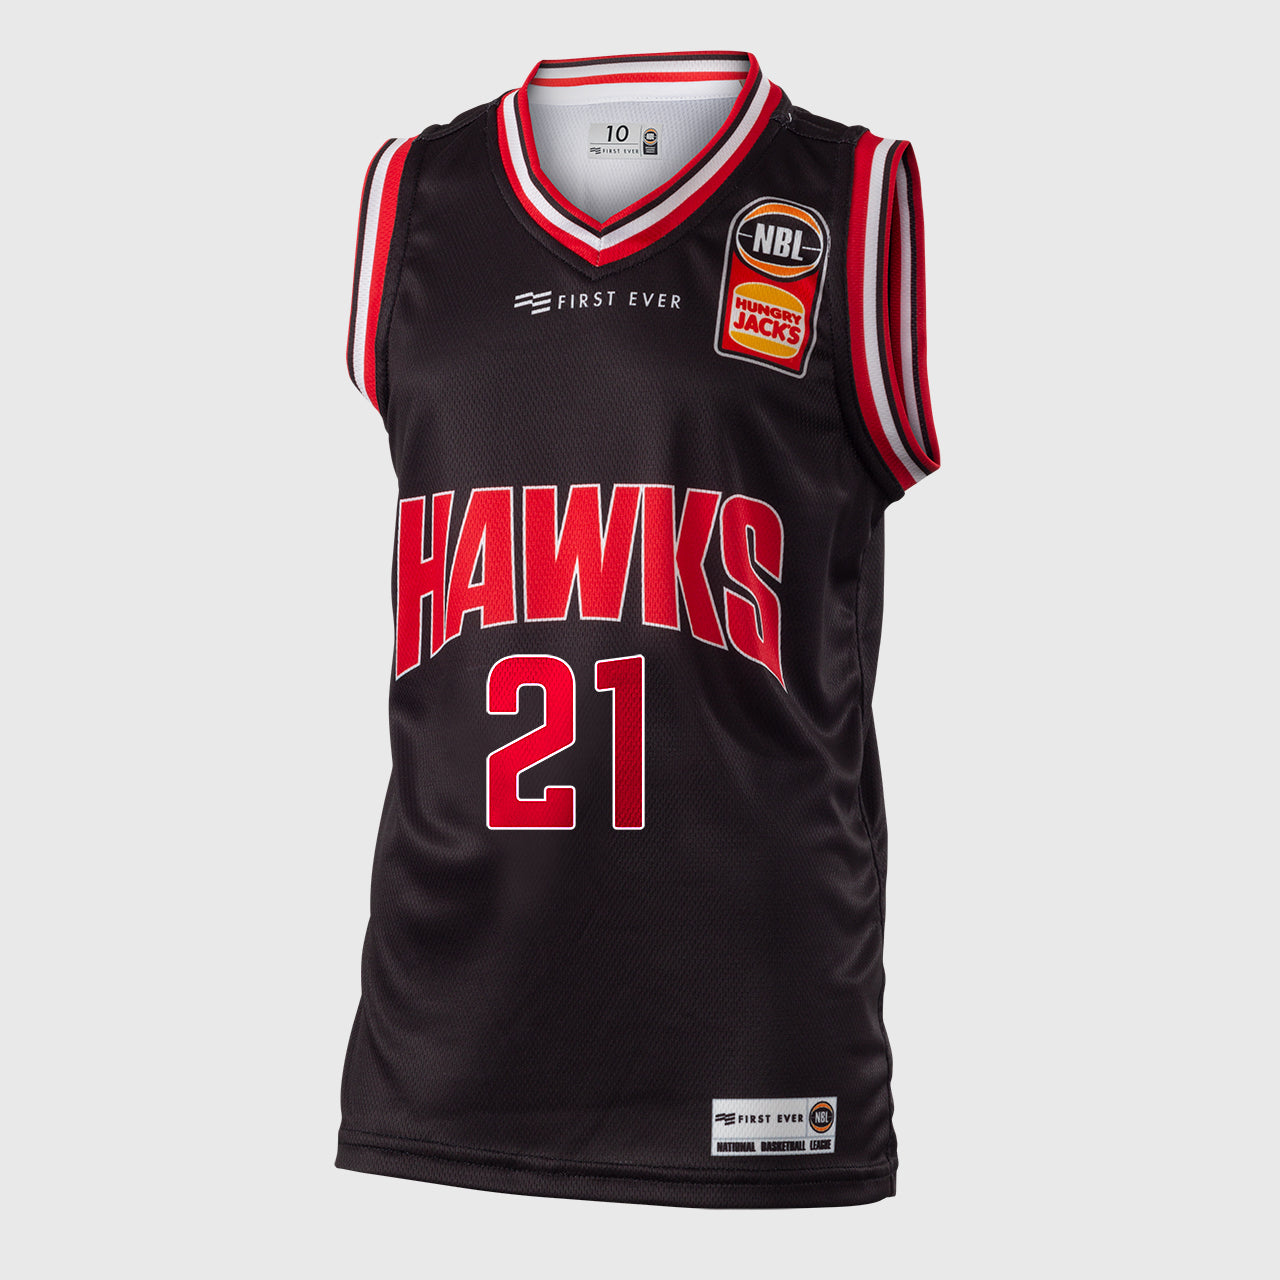 Illawarra Hawks 18/19 Youth Authentic Jersey - Todd Blanchfield